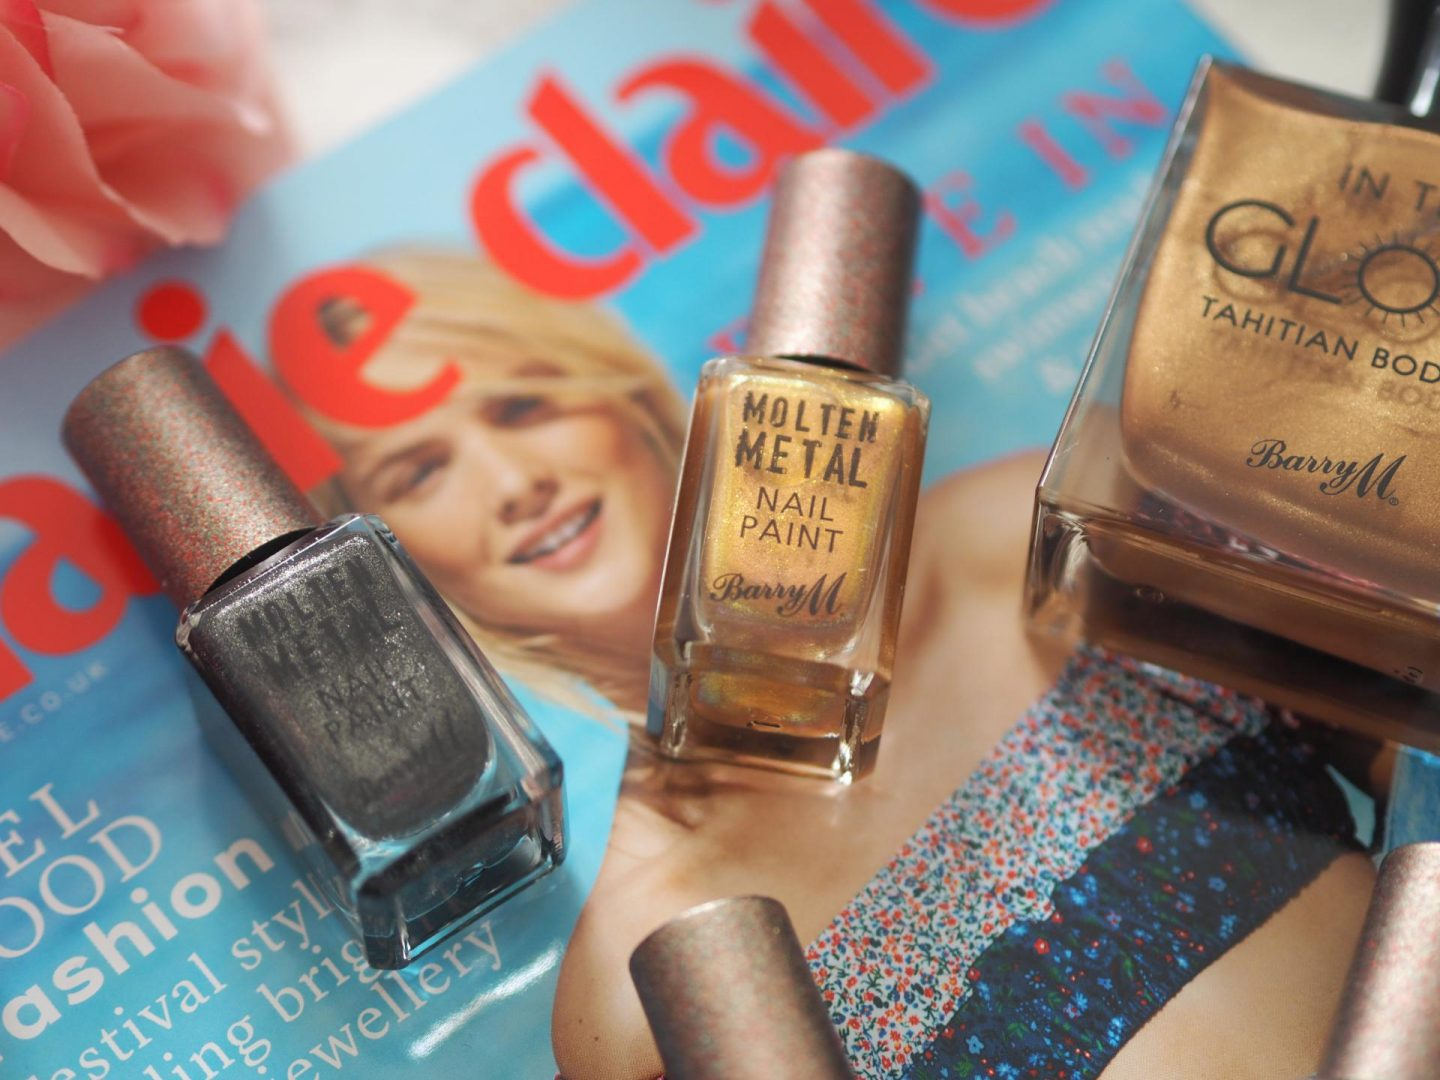 Barry M Molten Metals Nail Paint